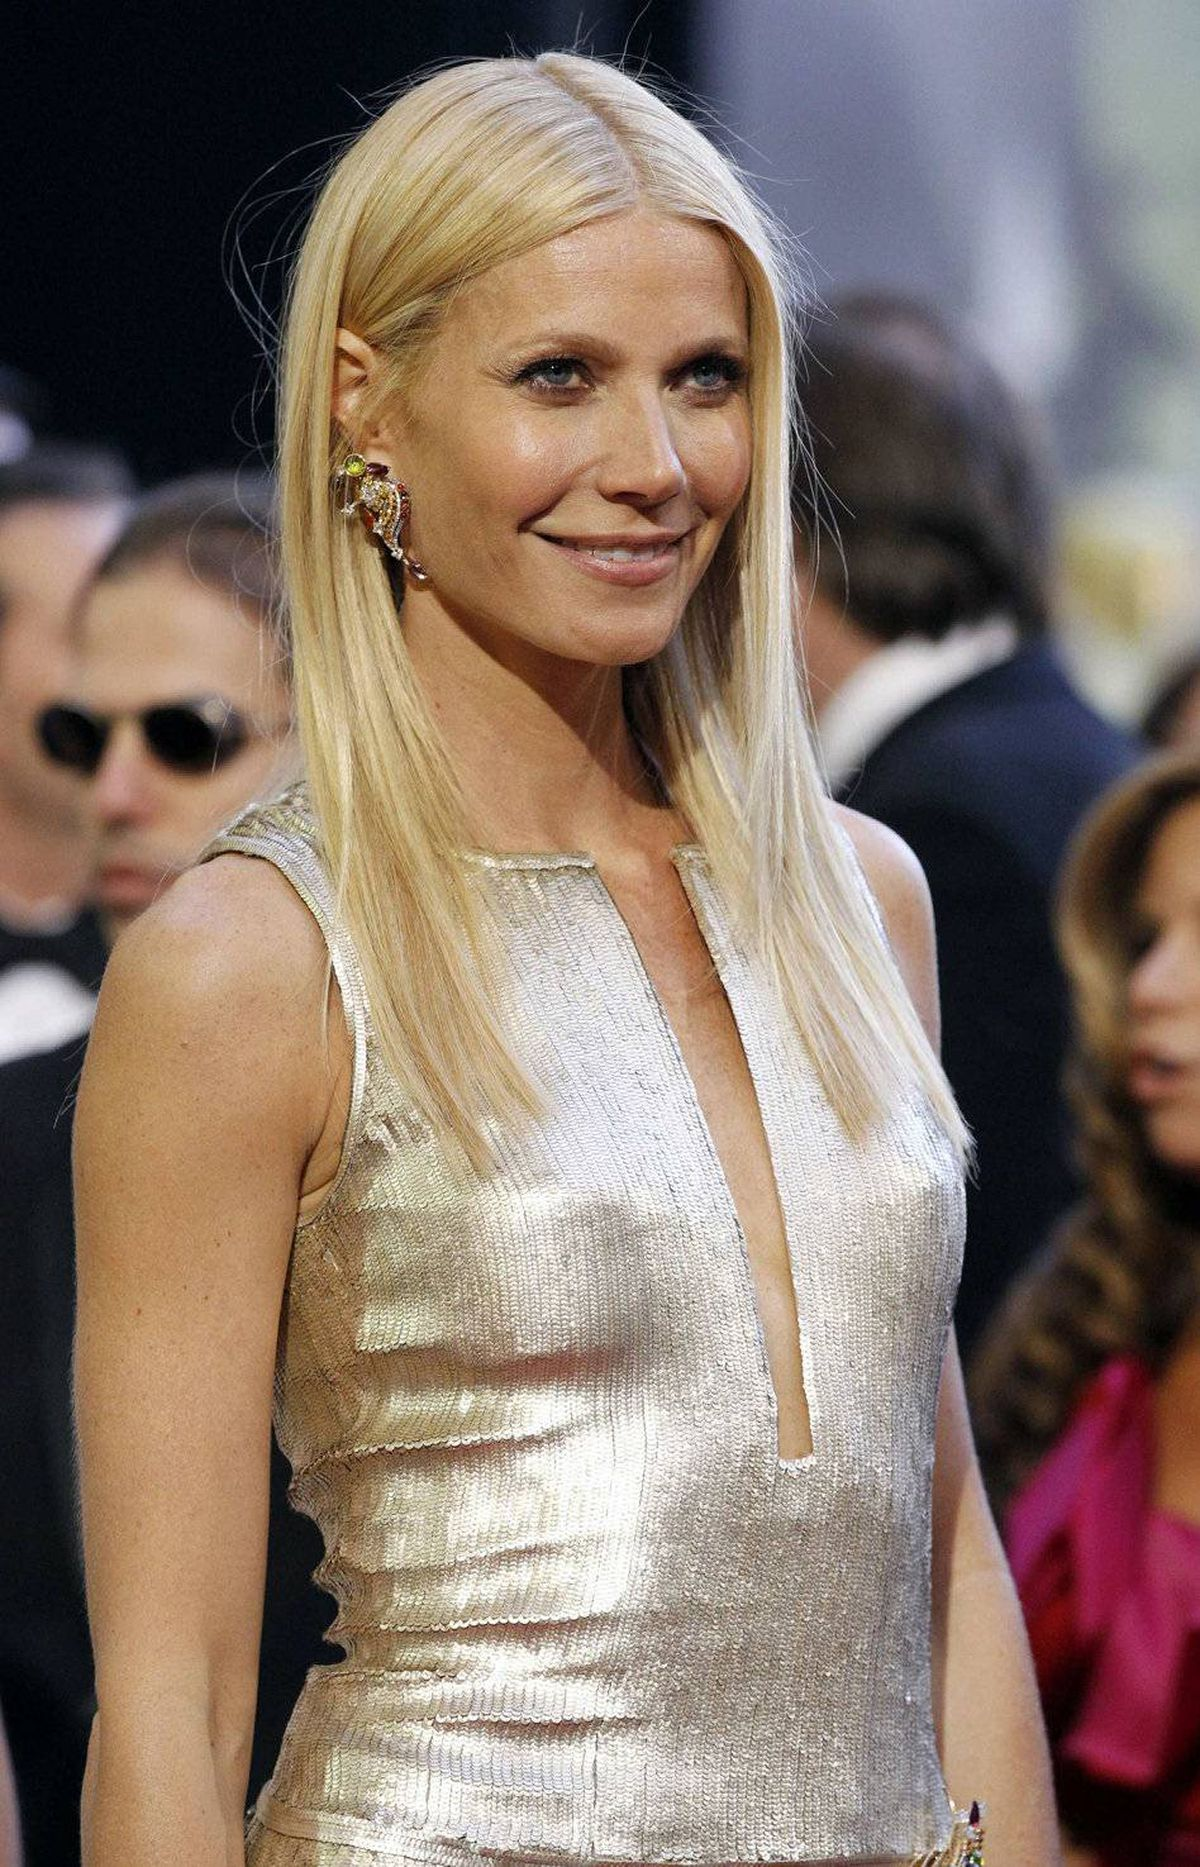 Gwyneth Paltrow and Chris Martin chose Apple for their daughter and Moses for their son.